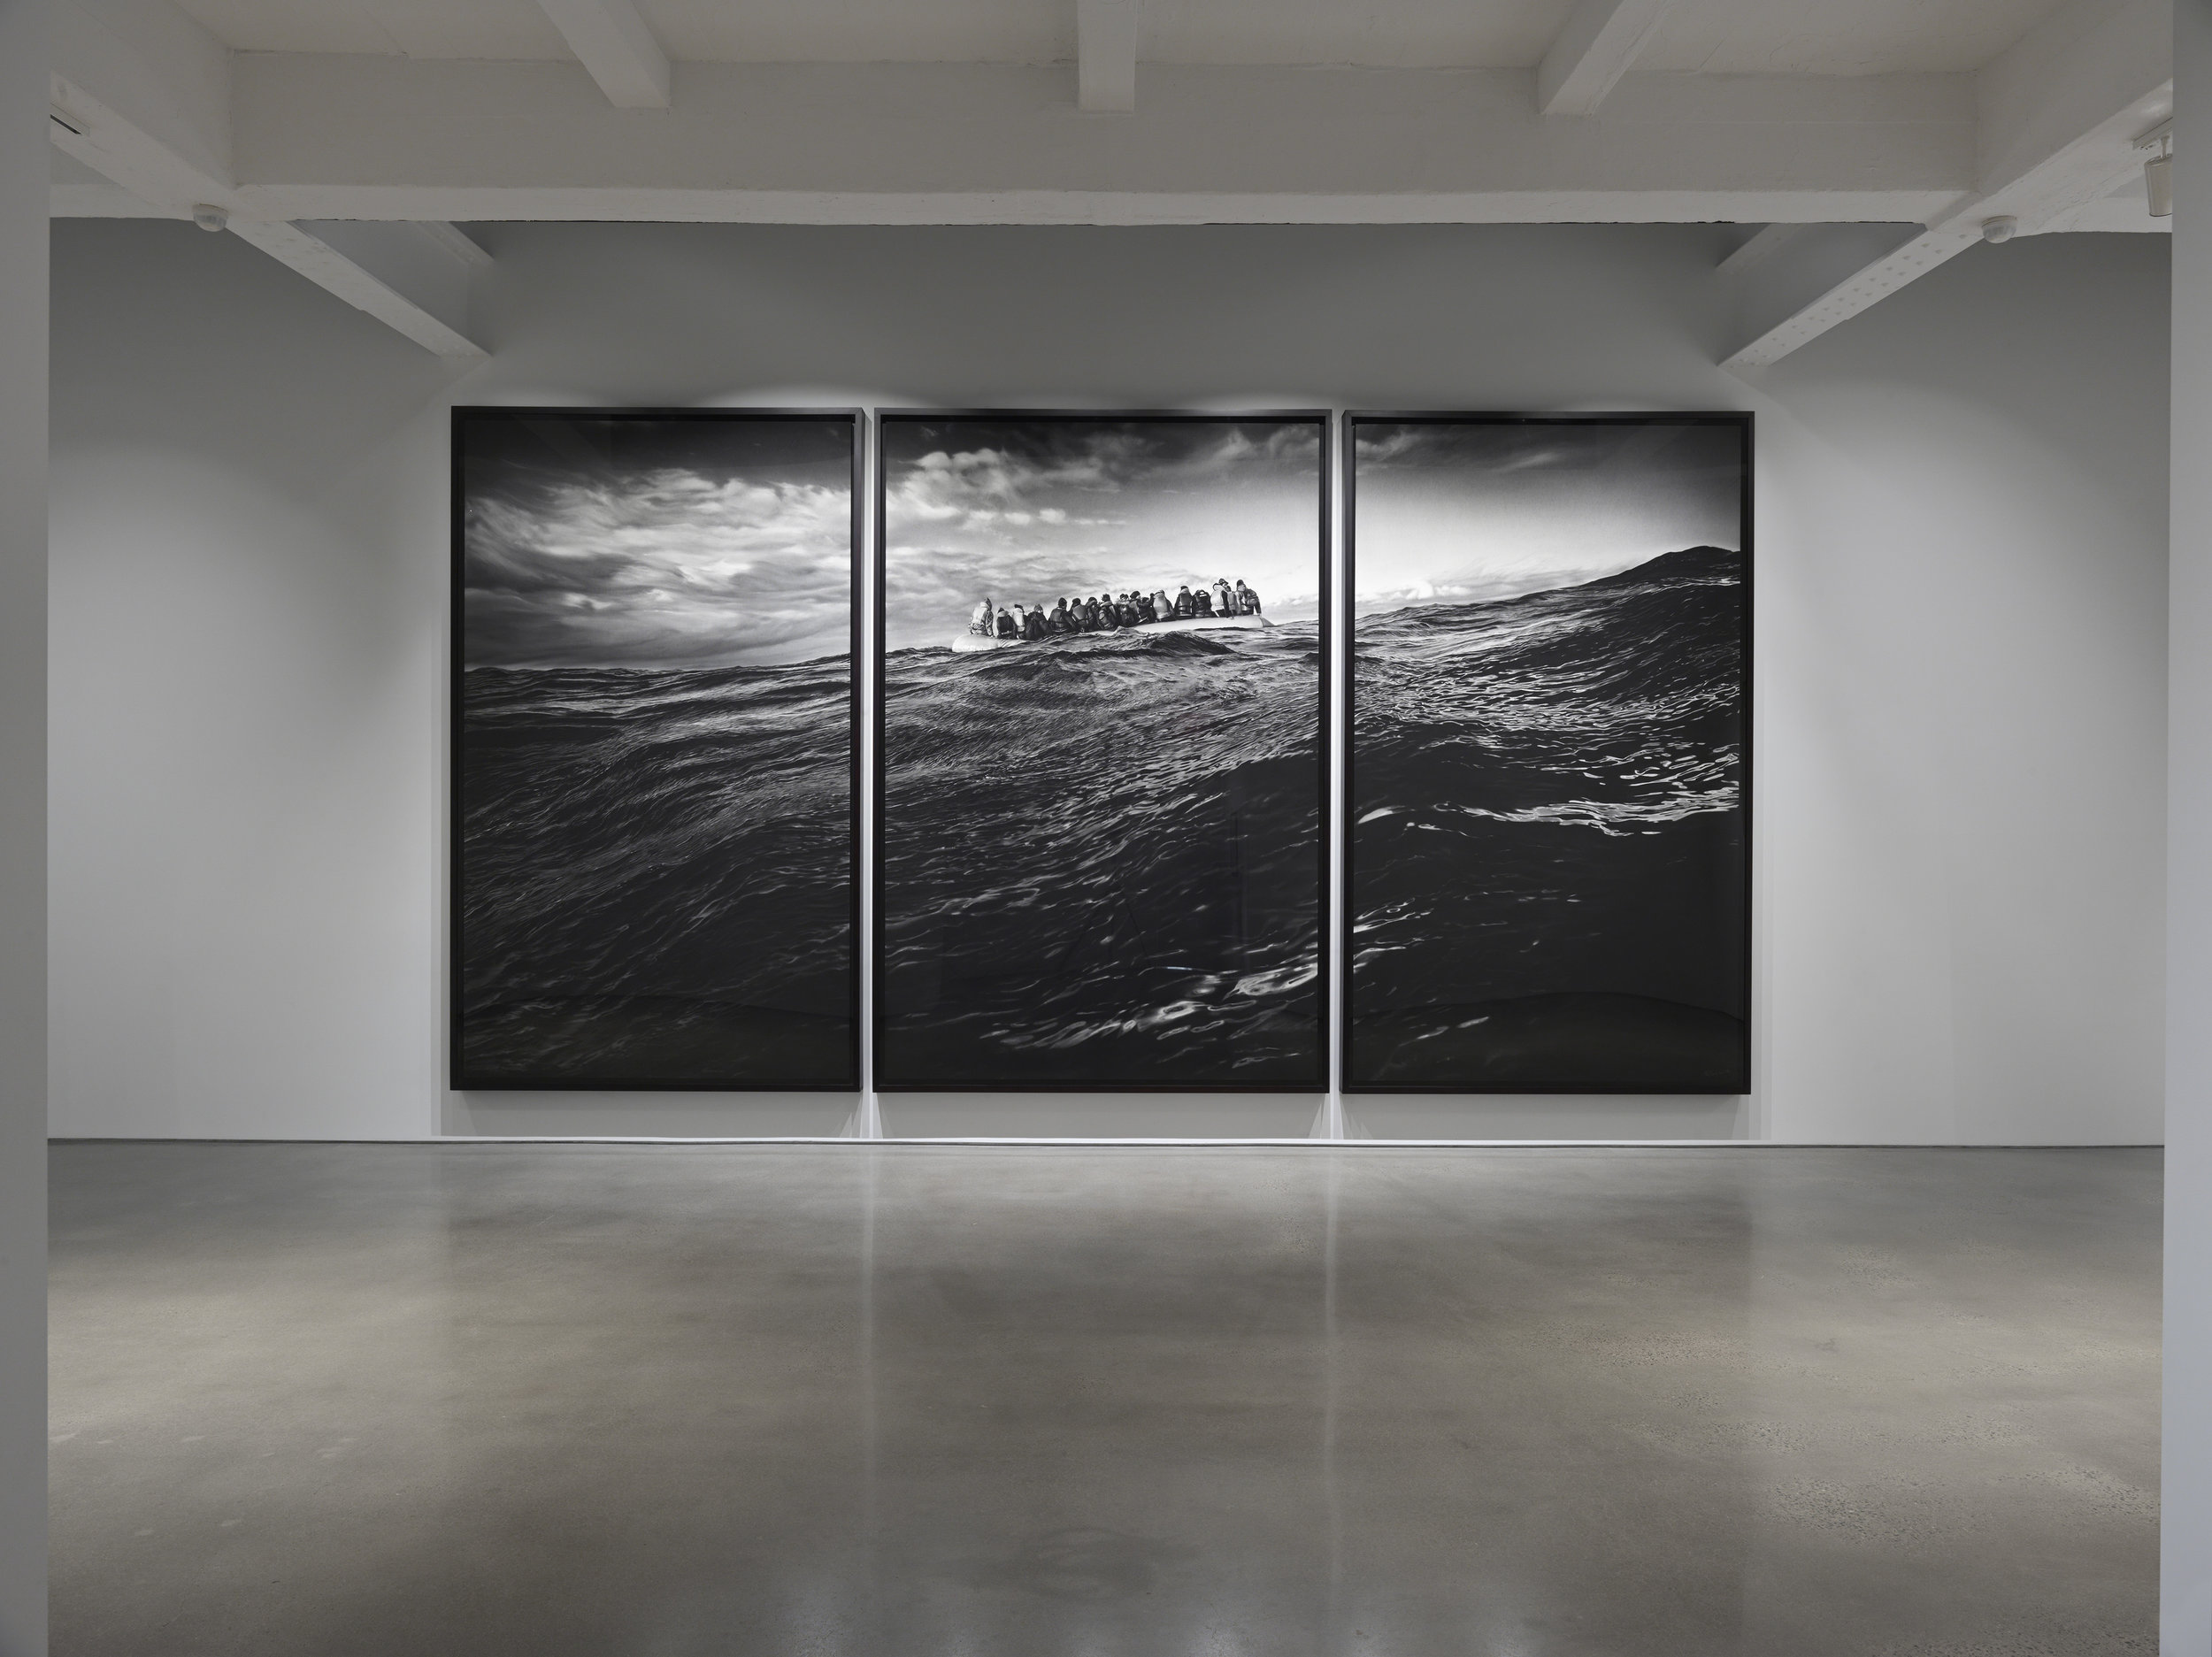 Robert Longo, Untitled (Raft at Sea) , 2016. Charcoal on mounted paper, 140 x 281 inches (355.6 x 713.7 cm) overall. Courtesy of the artist and Metro Pictures, New York